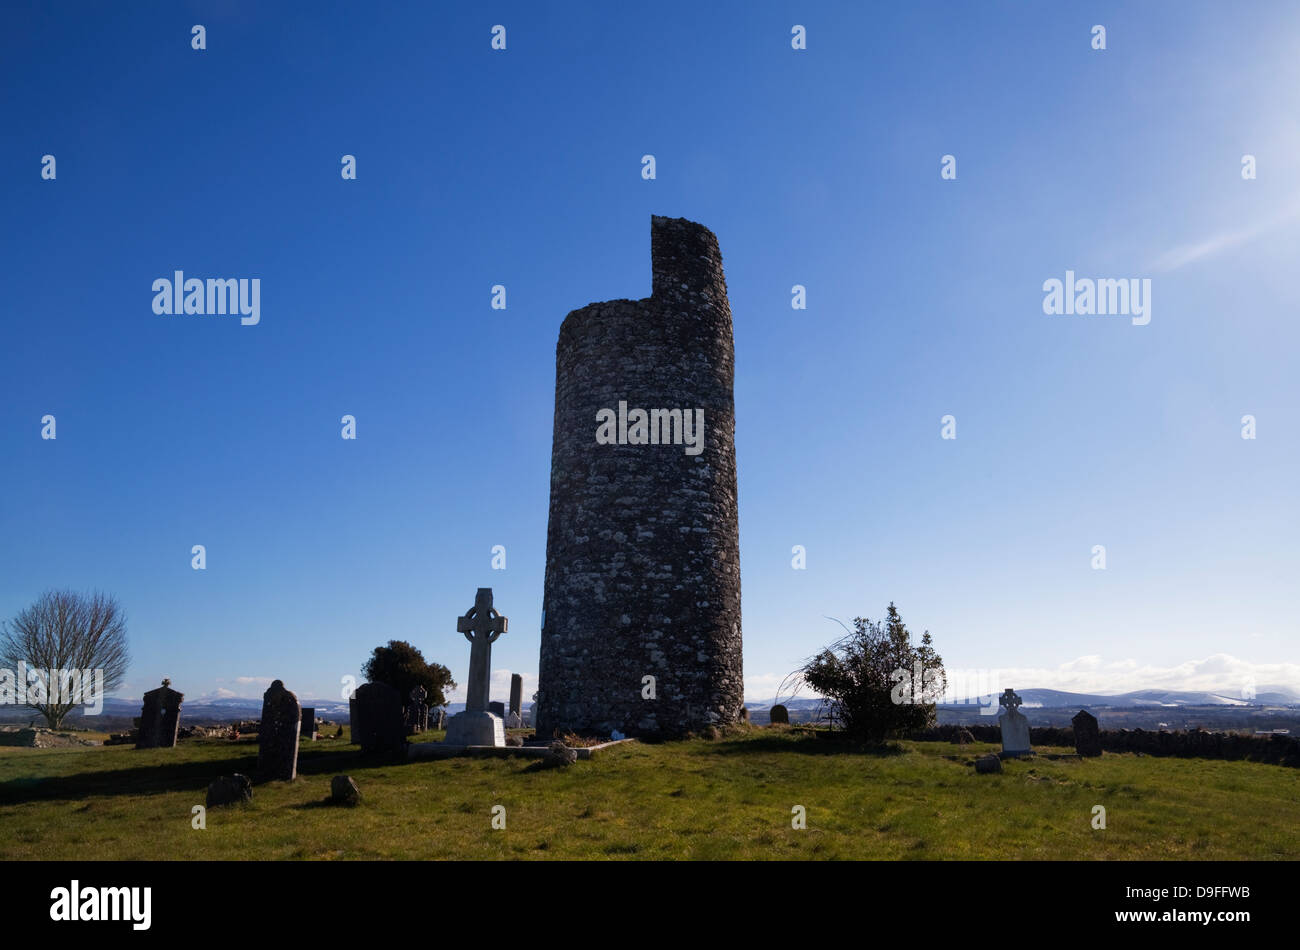 11th Century Round Tower, In a monastery site said to be founded by St Patrick, Old Kilcullen, County Kildare, Ireland - Stock Image